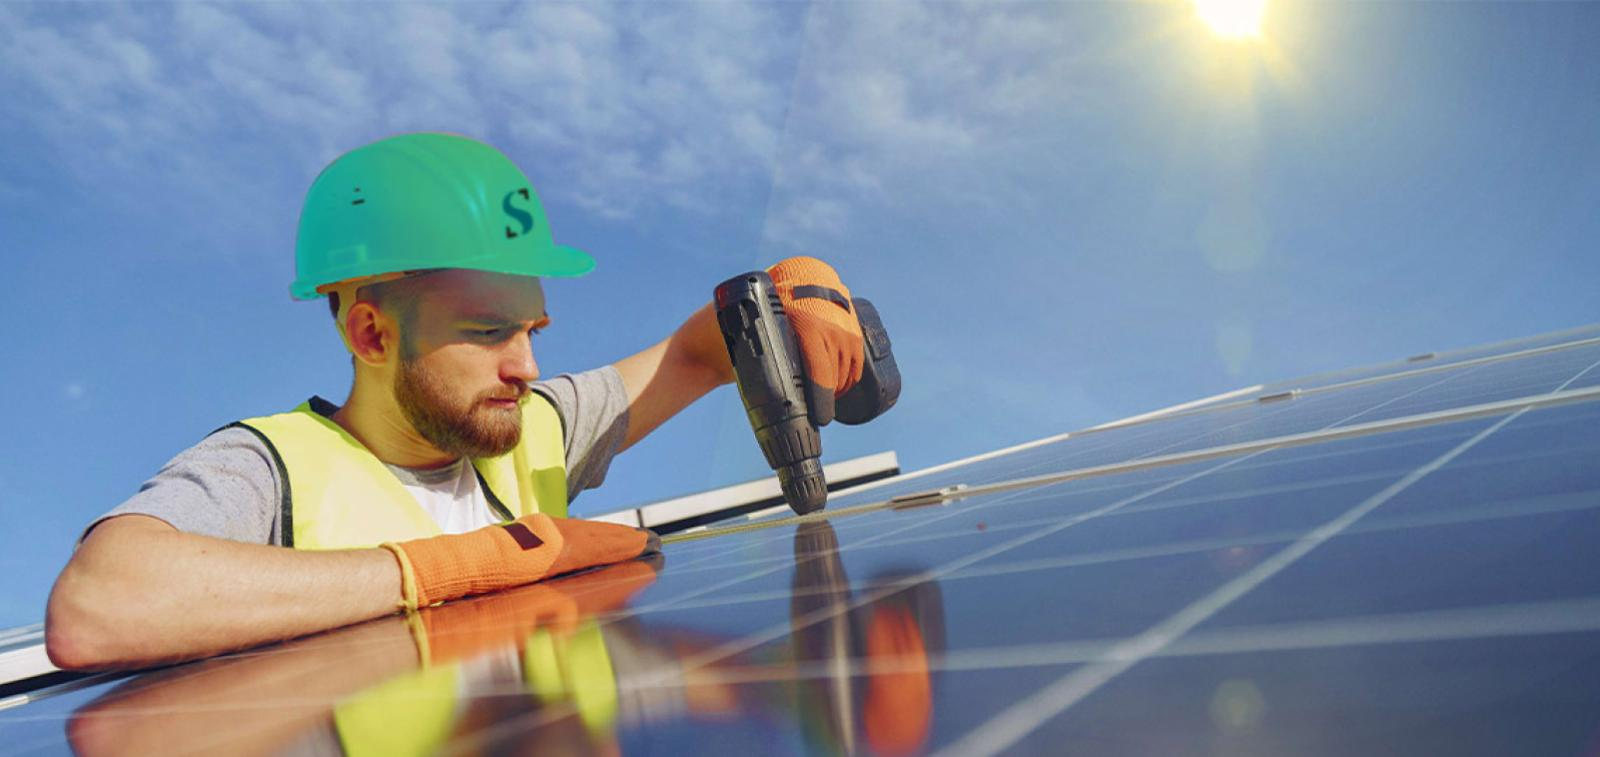 A workman wearing a Sanctuary branded hard-hat carries out maintenence on a solar panel